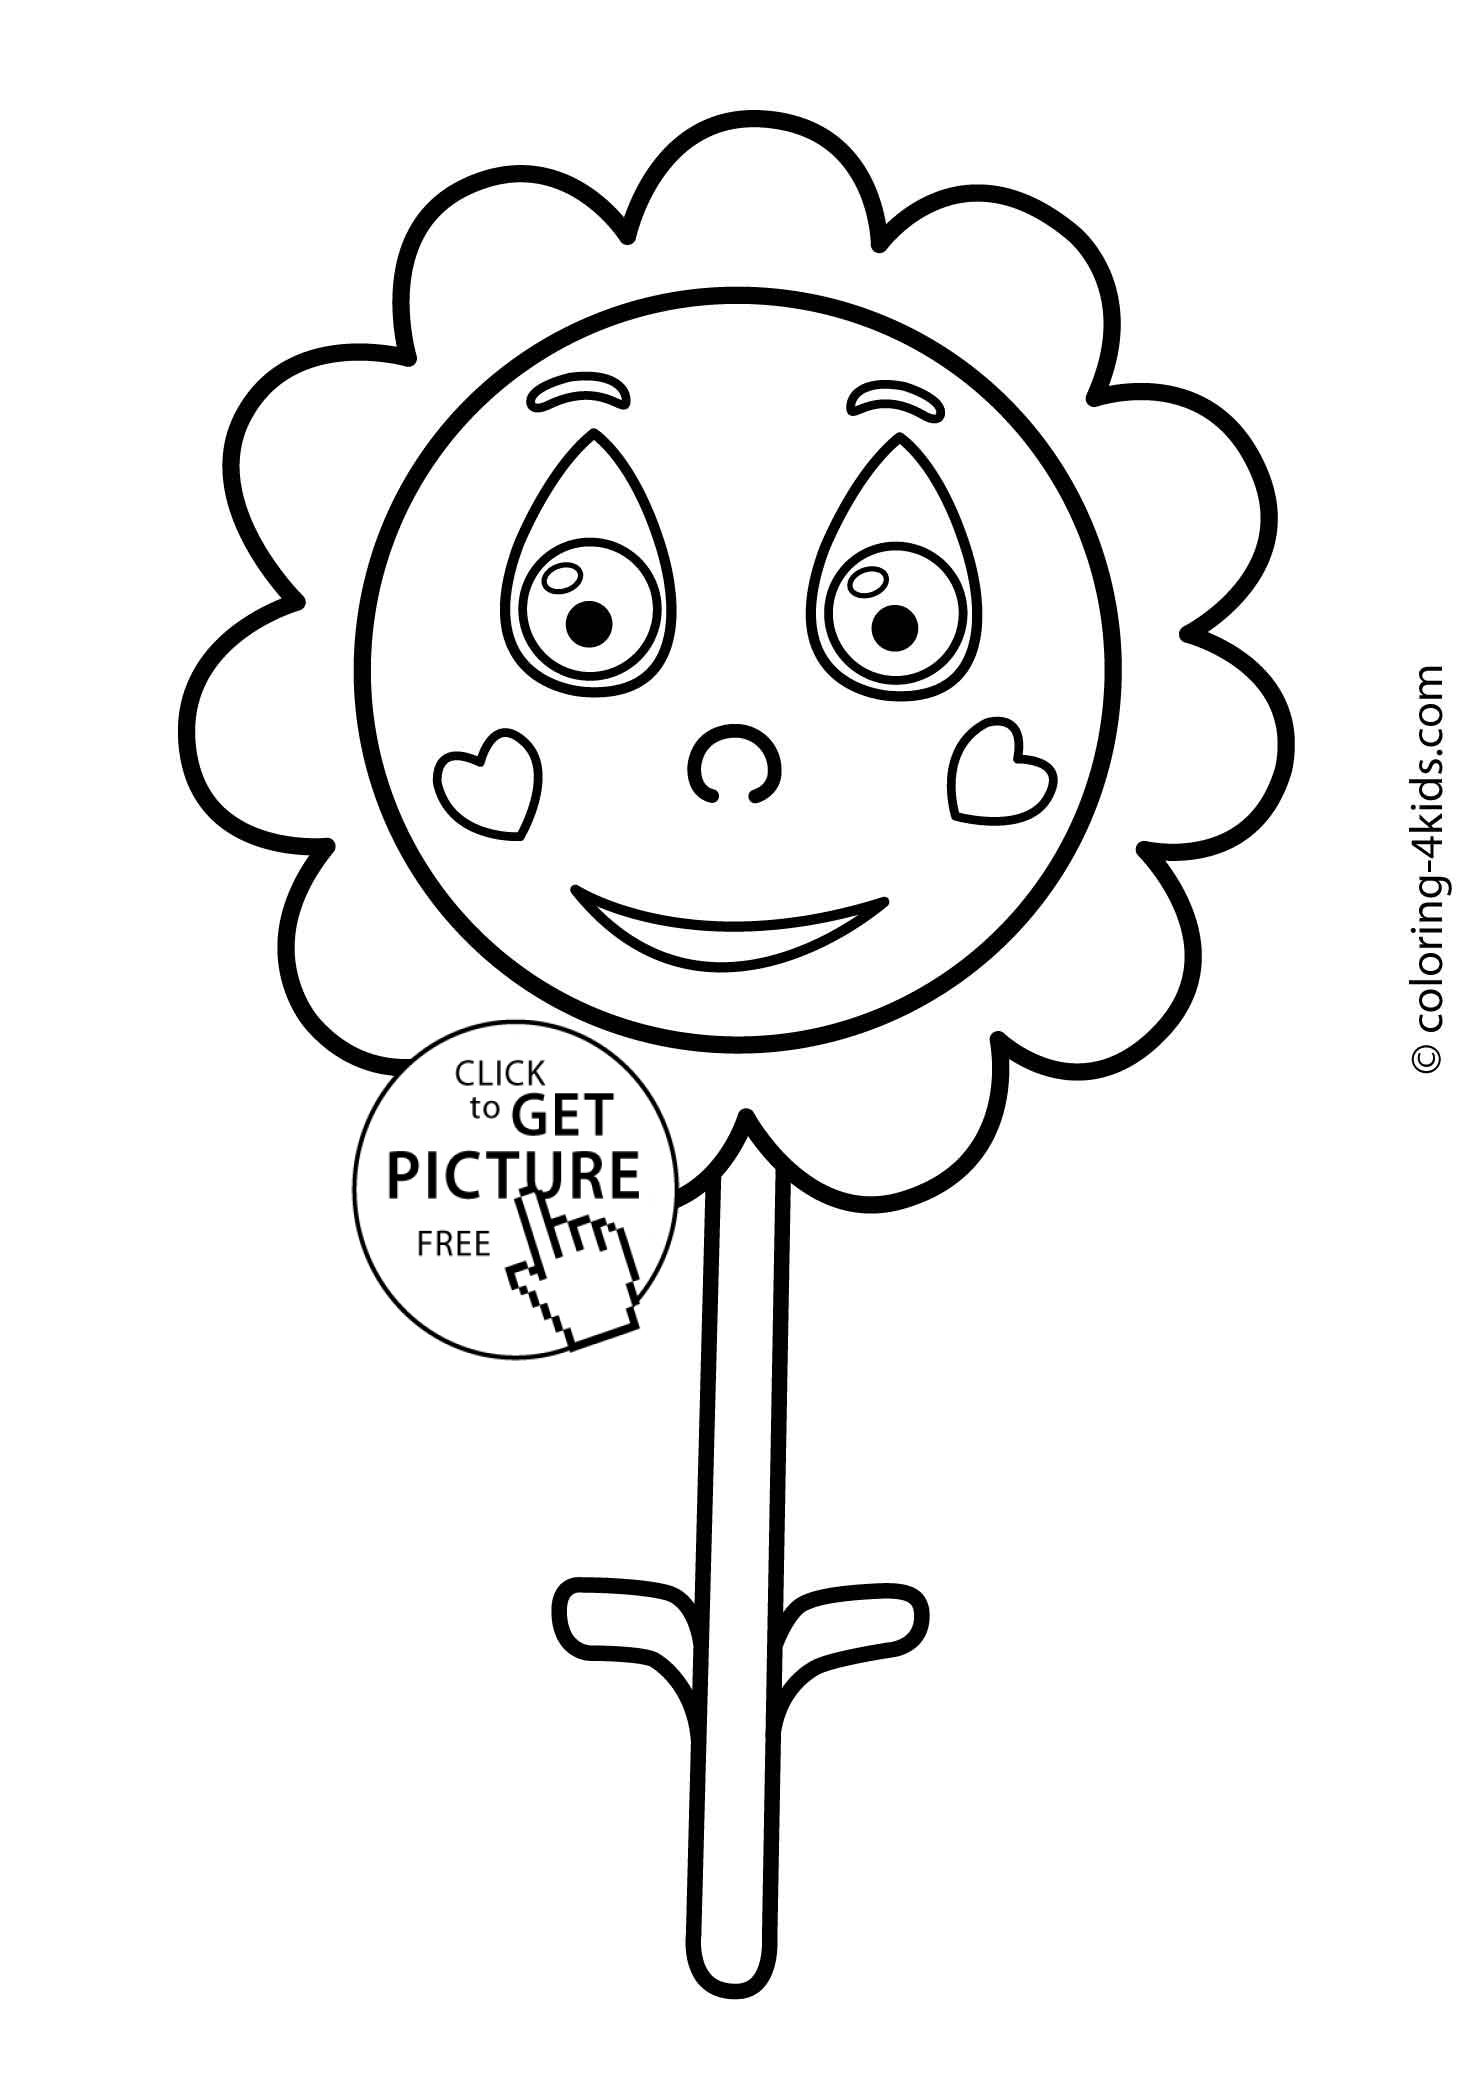 Flower coloring pages for kids, printable, 10 | coloing-4kids.com